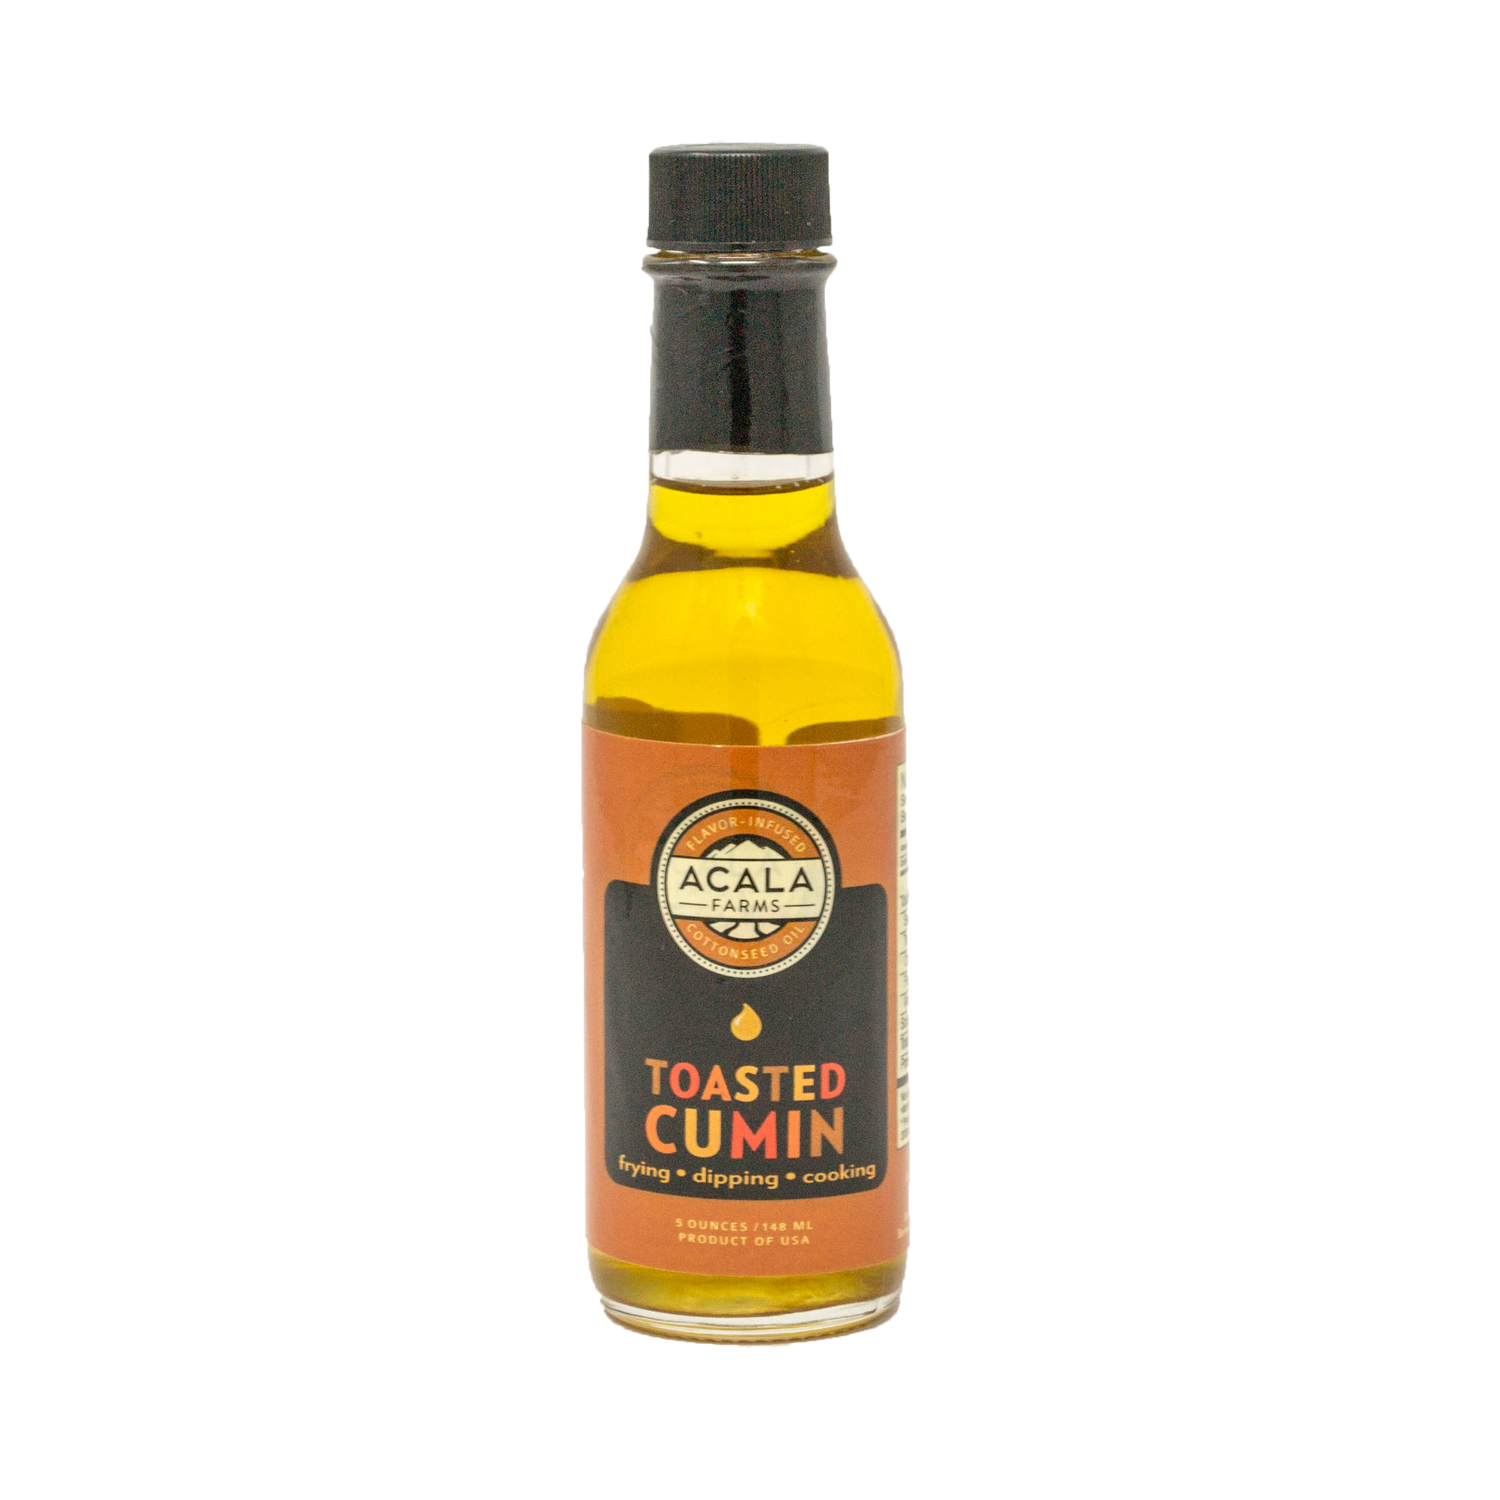 Toasted Cumin Acala Farms cooking oil